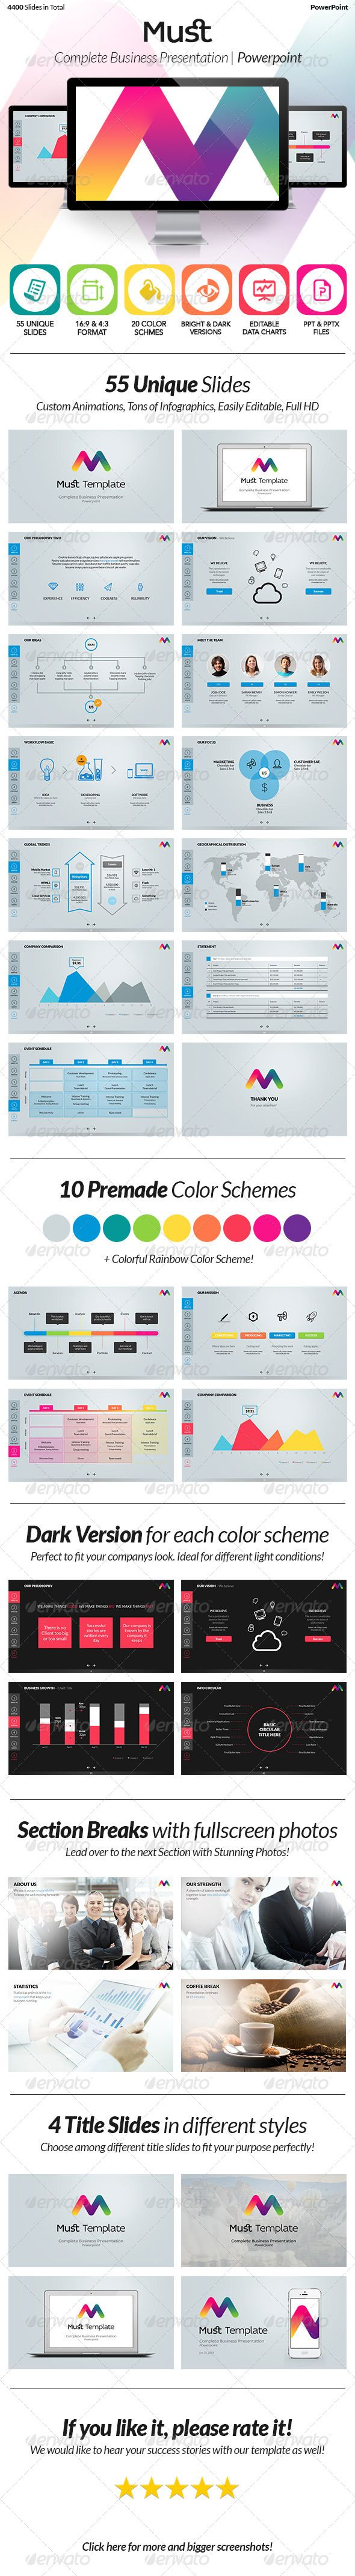 business project powerpoint template by williamhenry989 fresh of